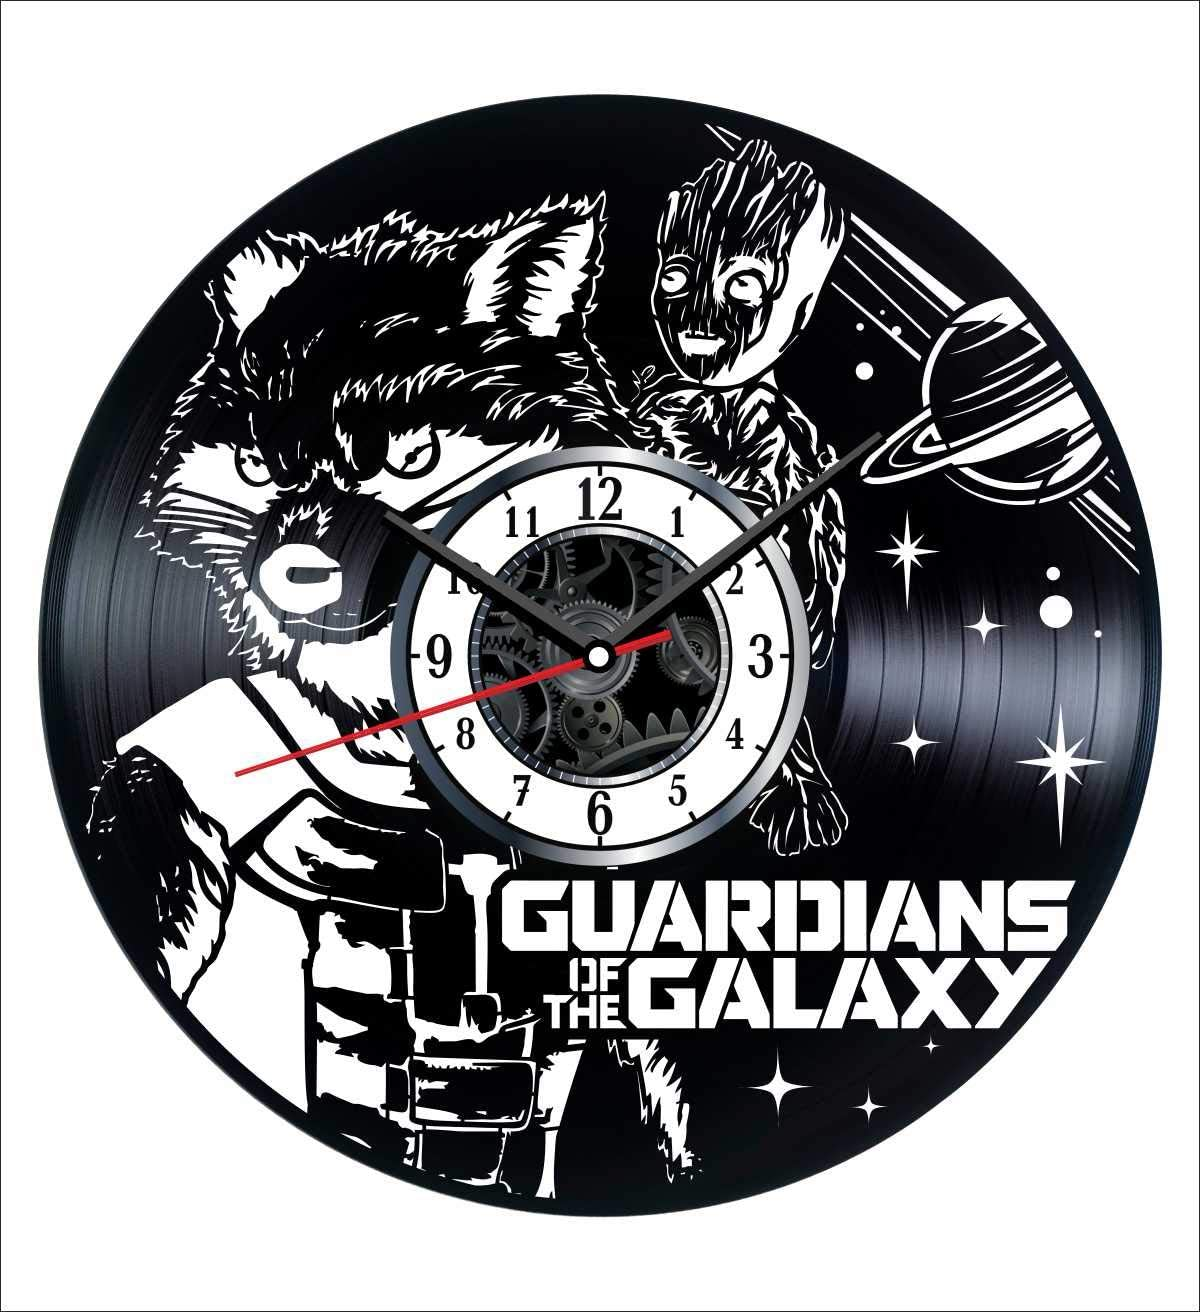 Guardians of The Galaxy Wall Clock Vintage Record - Get Unique Home and Office Decor Bedroom Kitchen Kids Living Room - Gifts for Men Women Kids Father Mother - Wall Art Design - Free Personalization